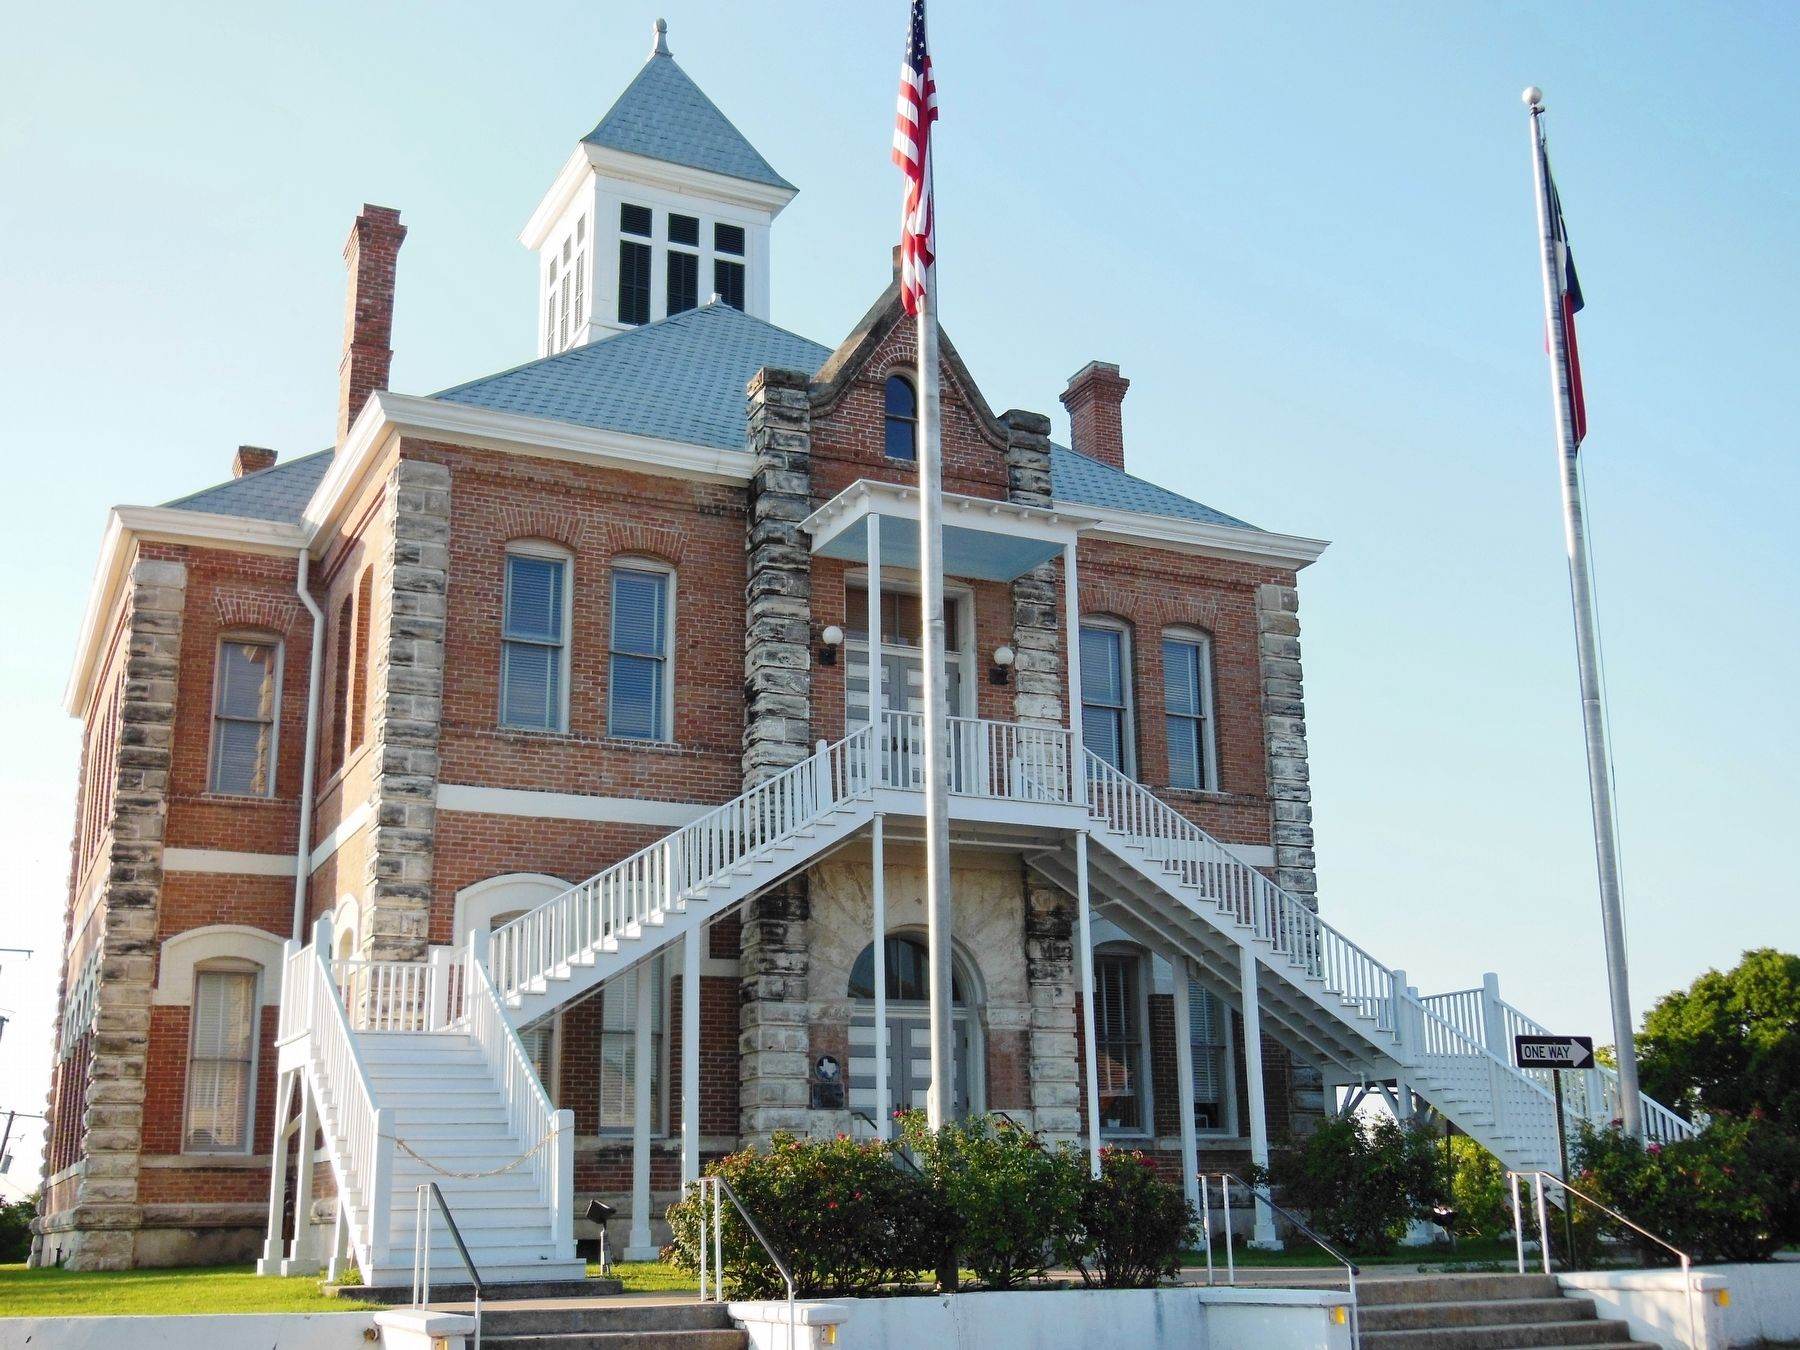 Grimes County Courthouse (<i>marker visible on wall, left of entrance</i>) image. Click for full size.